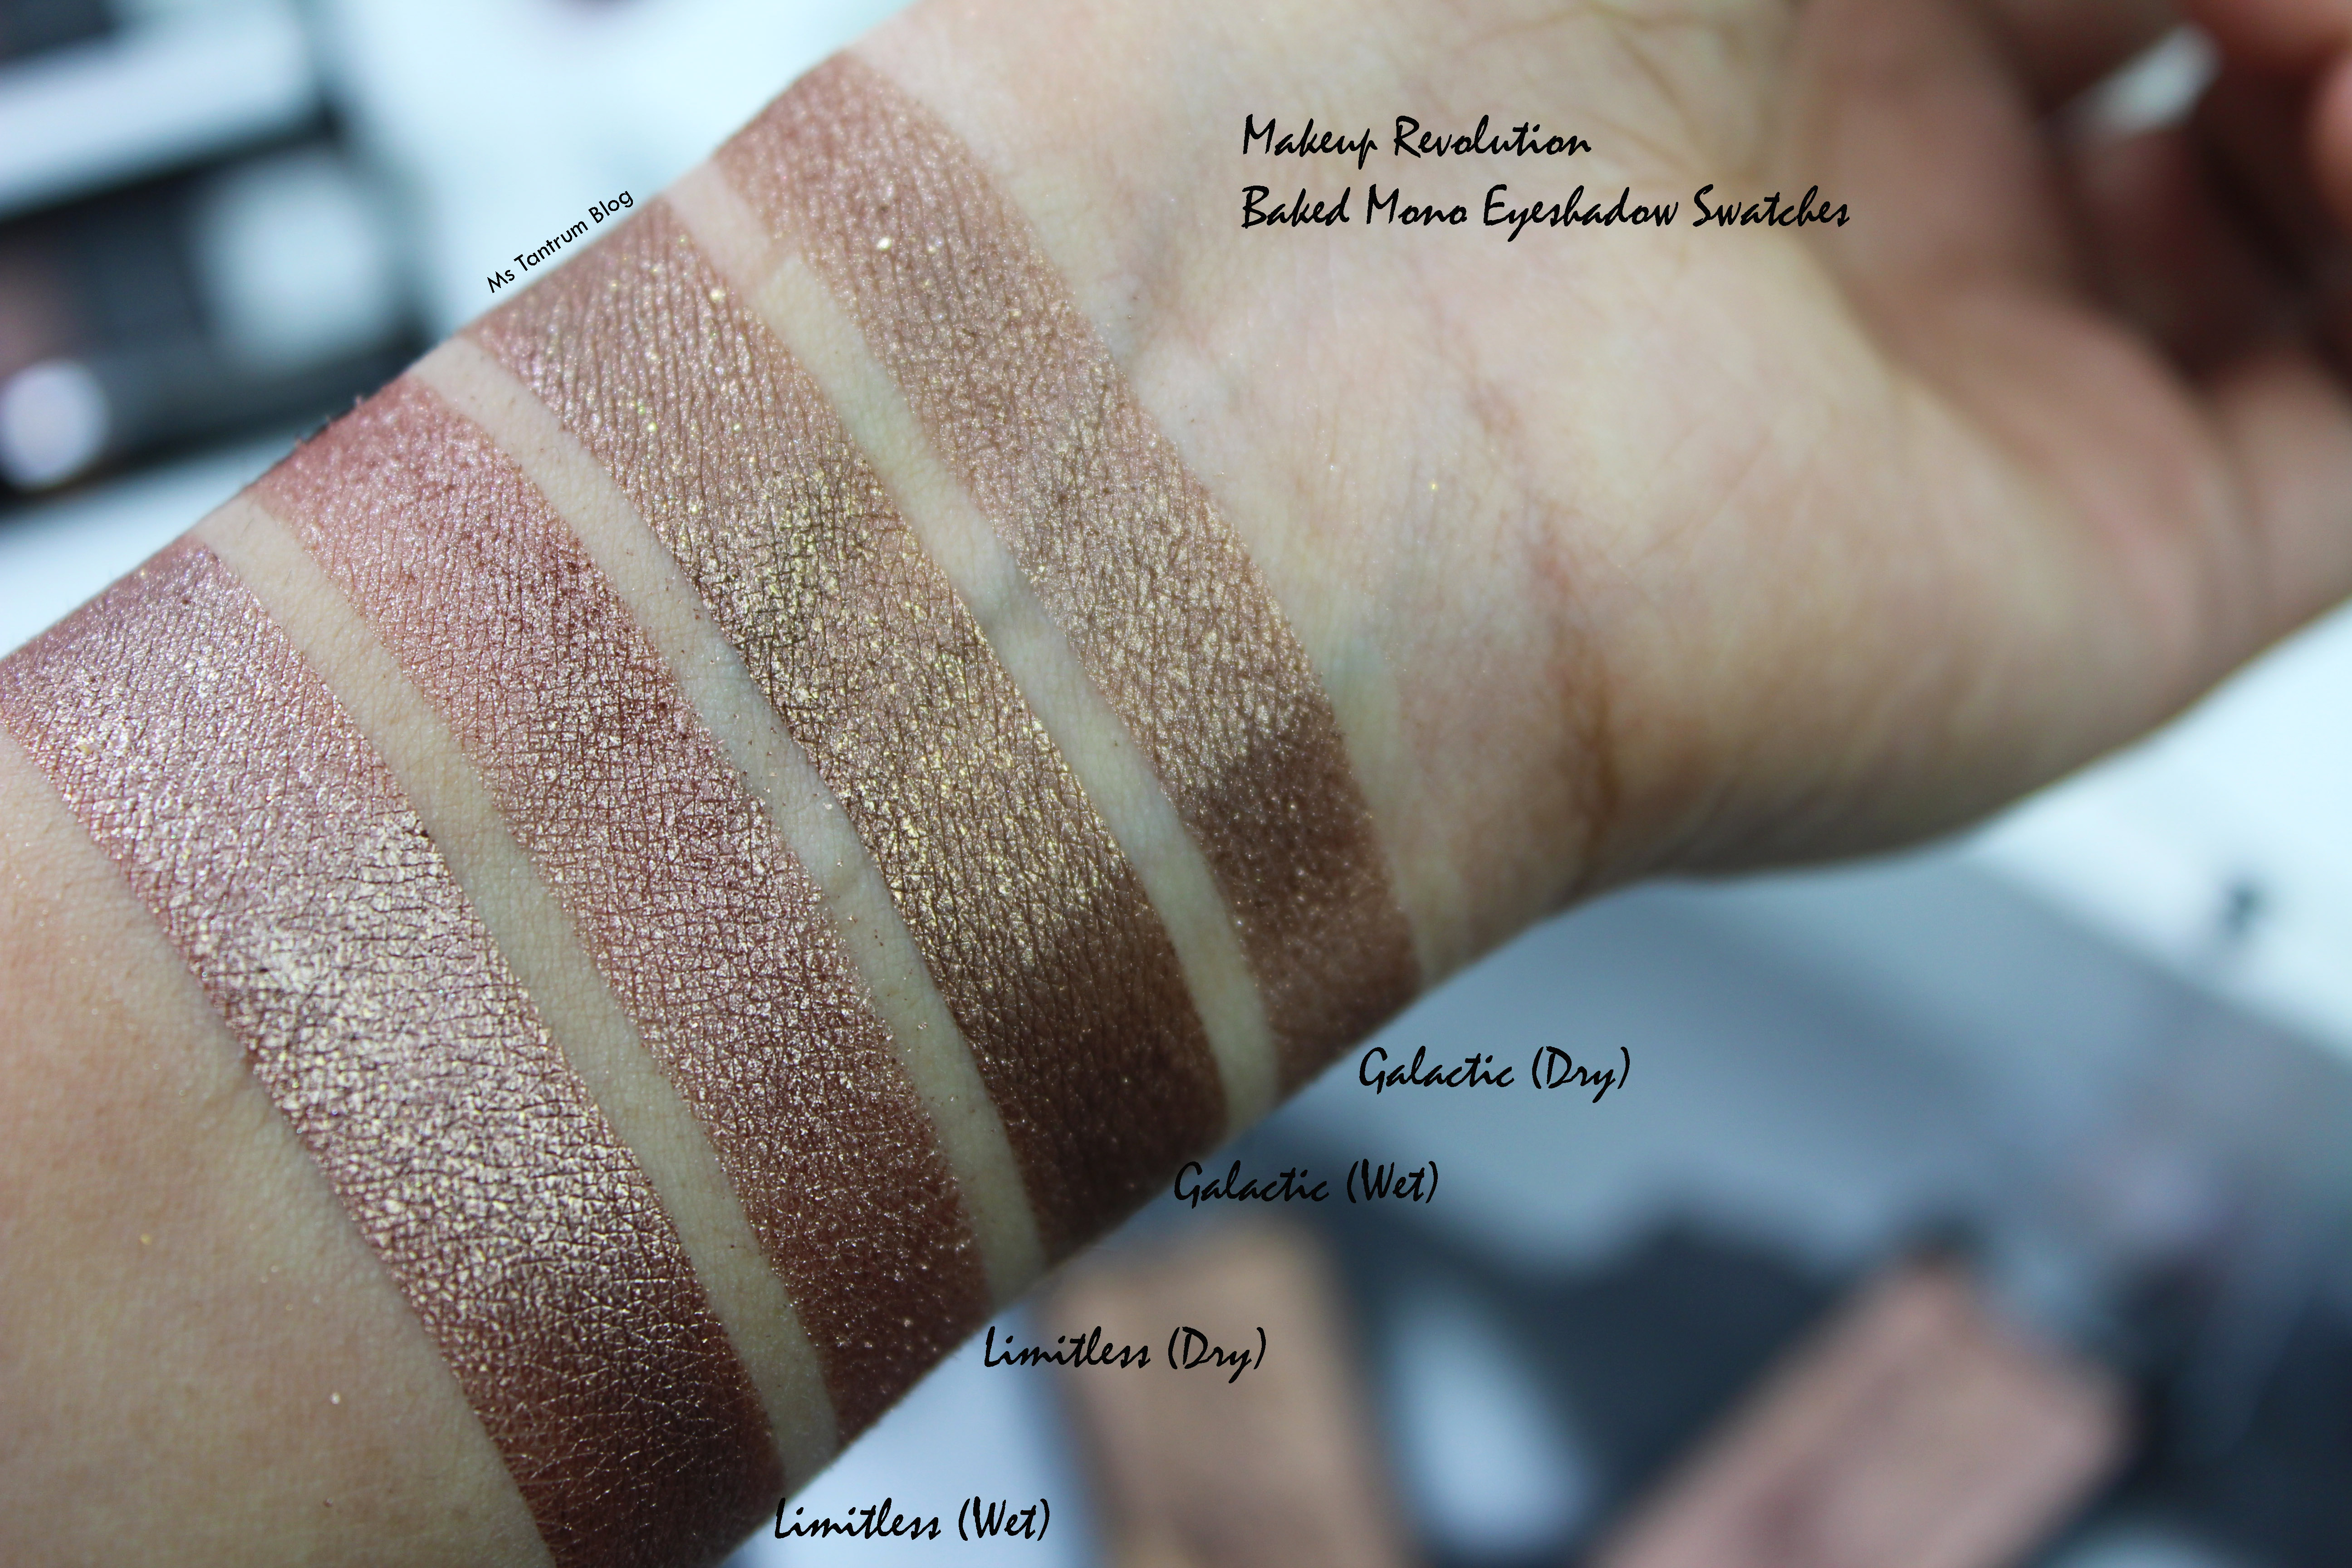 Makeup Revolution Baked Eyeshadow swatches - Limitless, Galactic